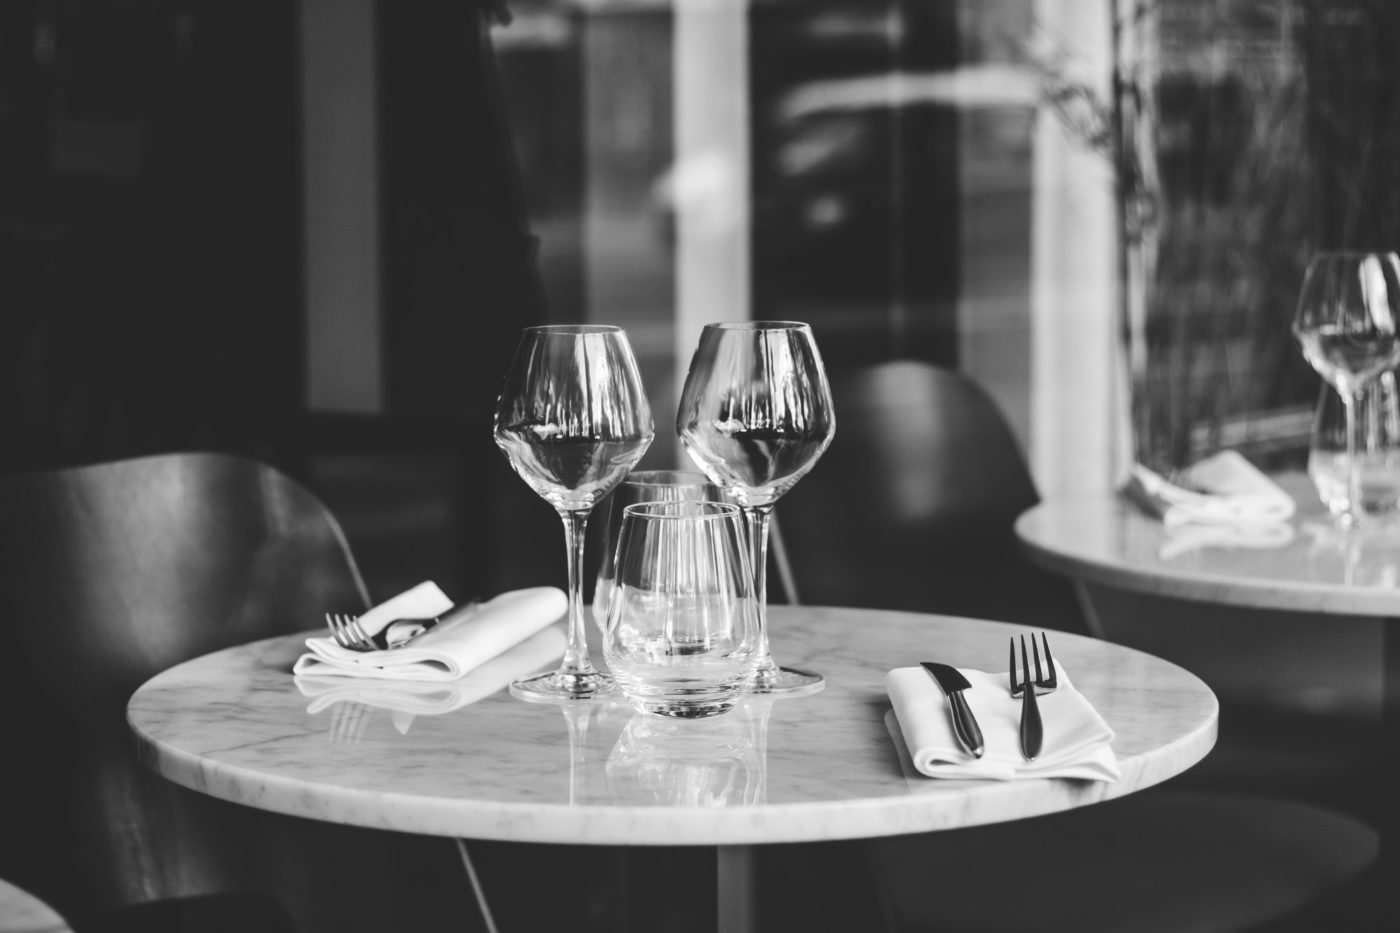 Table setting in a French restaurant for two